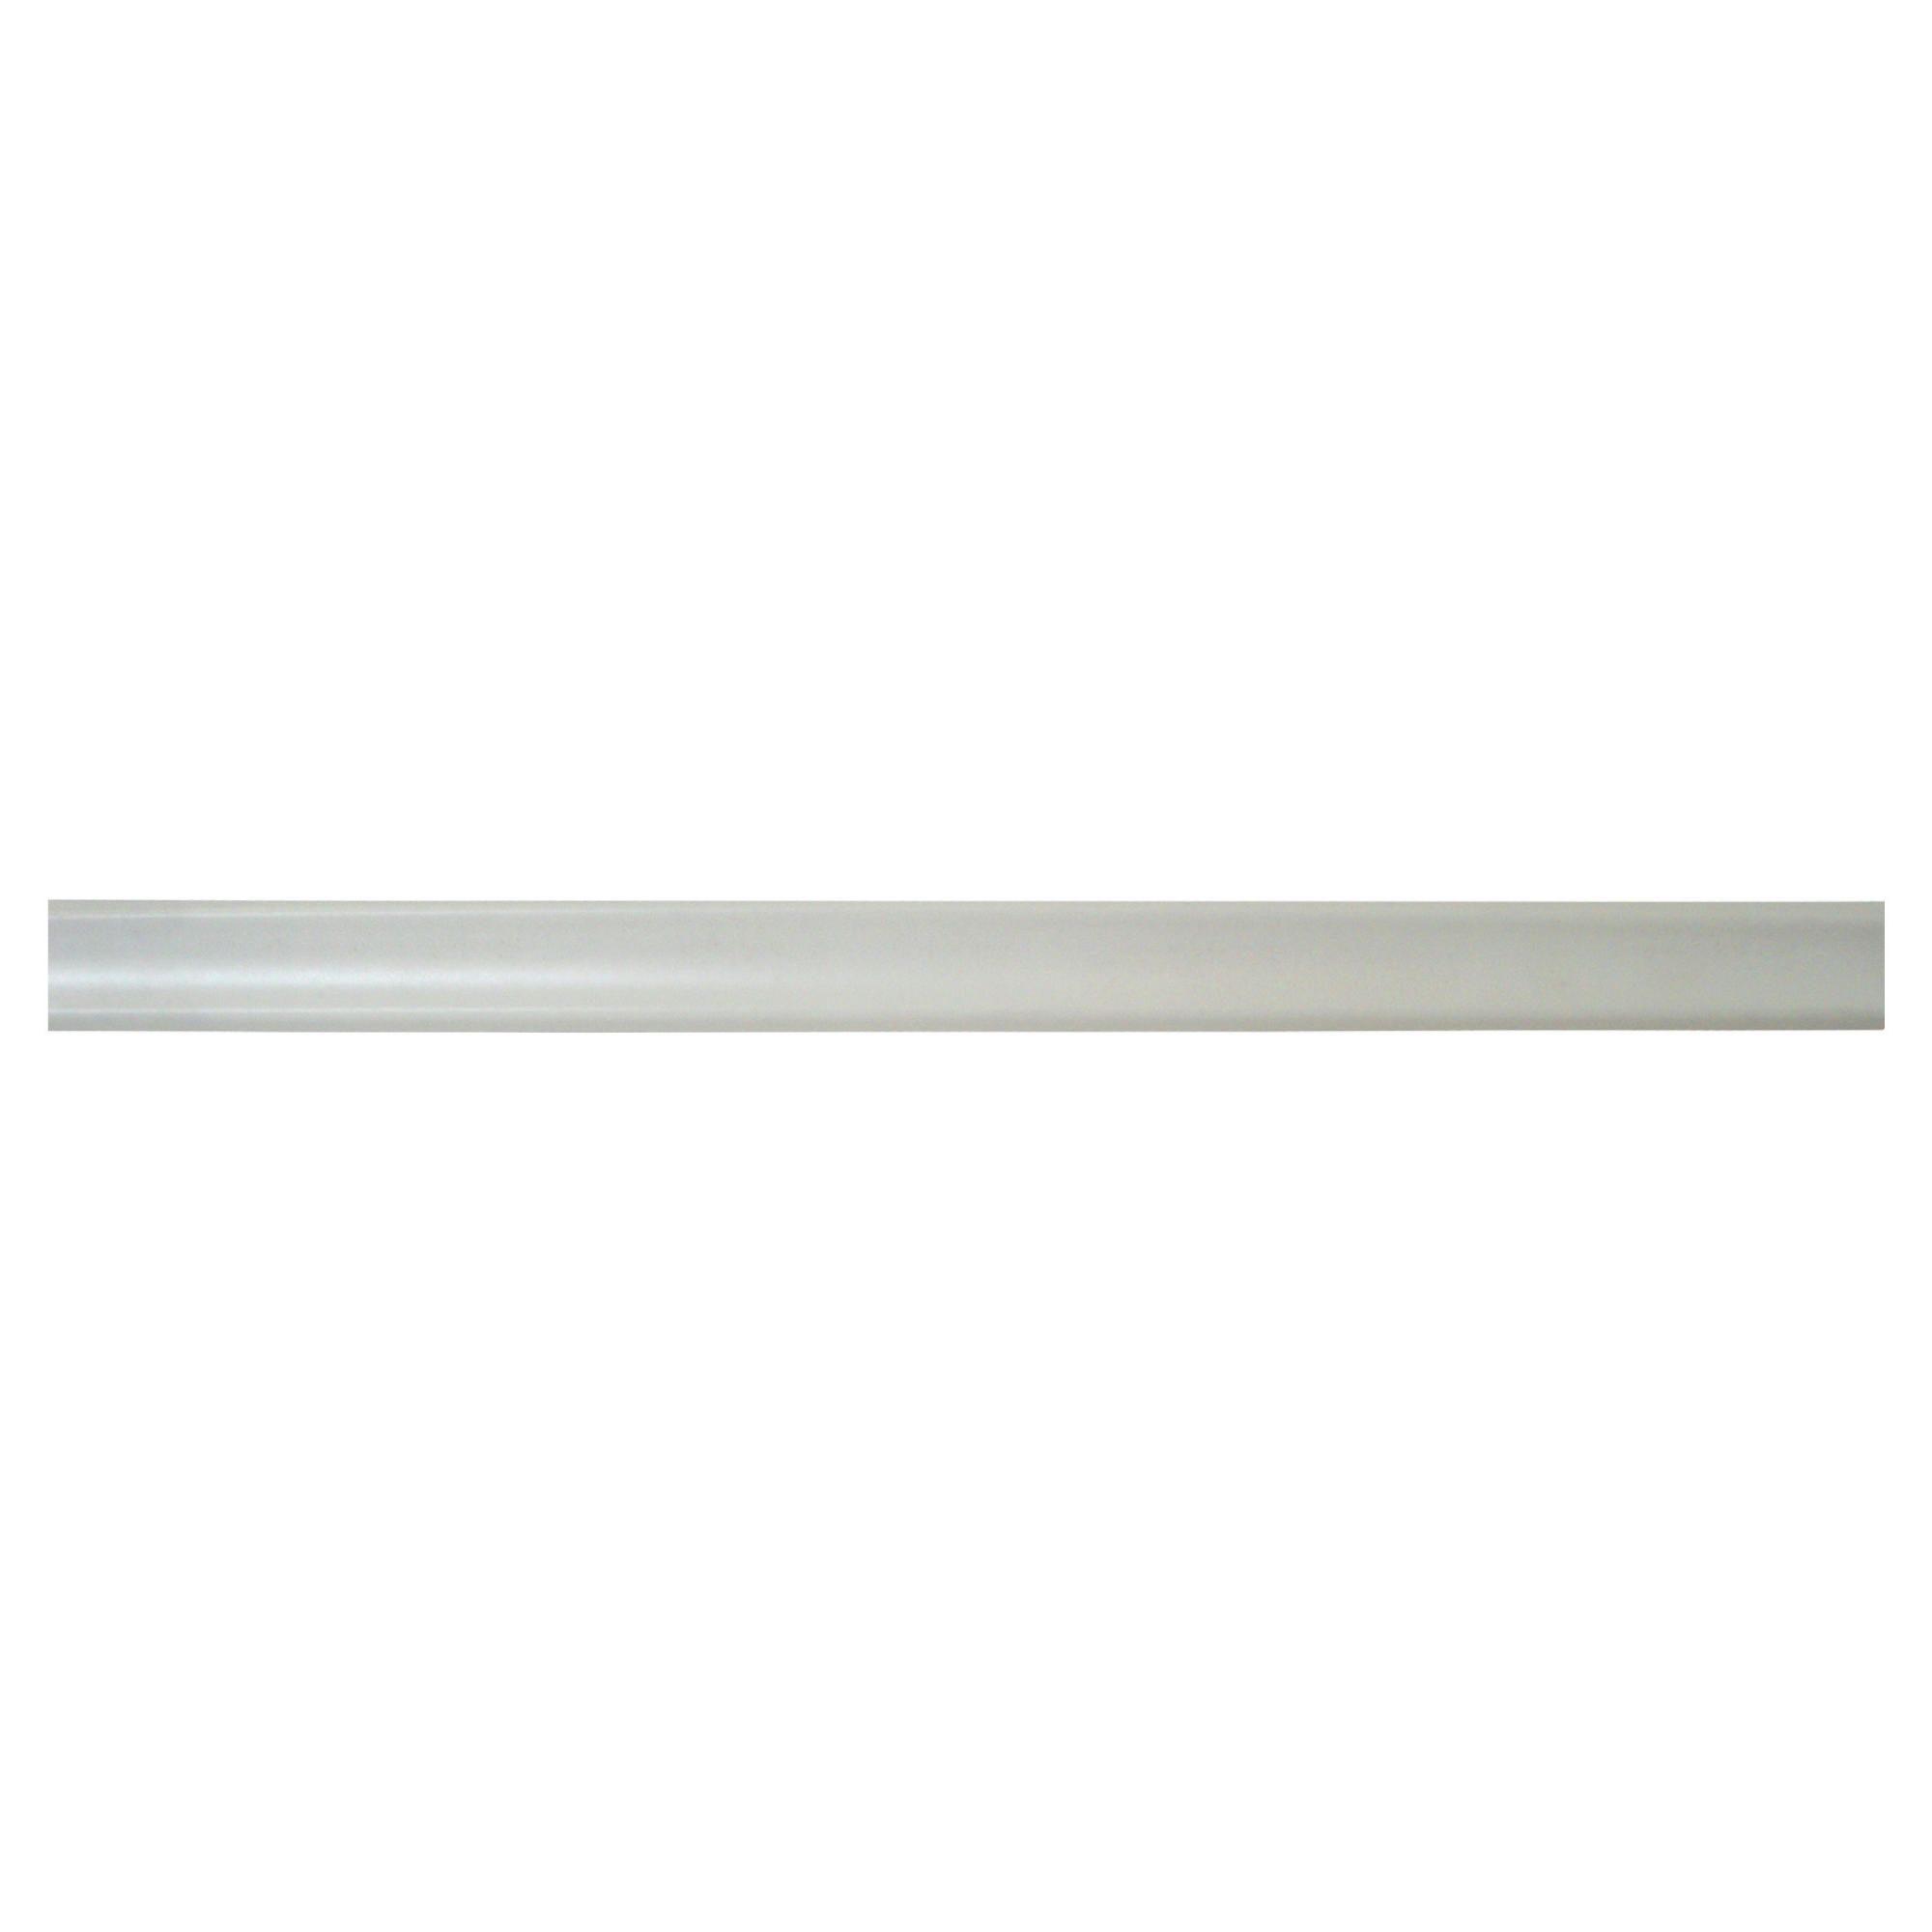 Westco Laminate Floor Trim Scotia 2m White